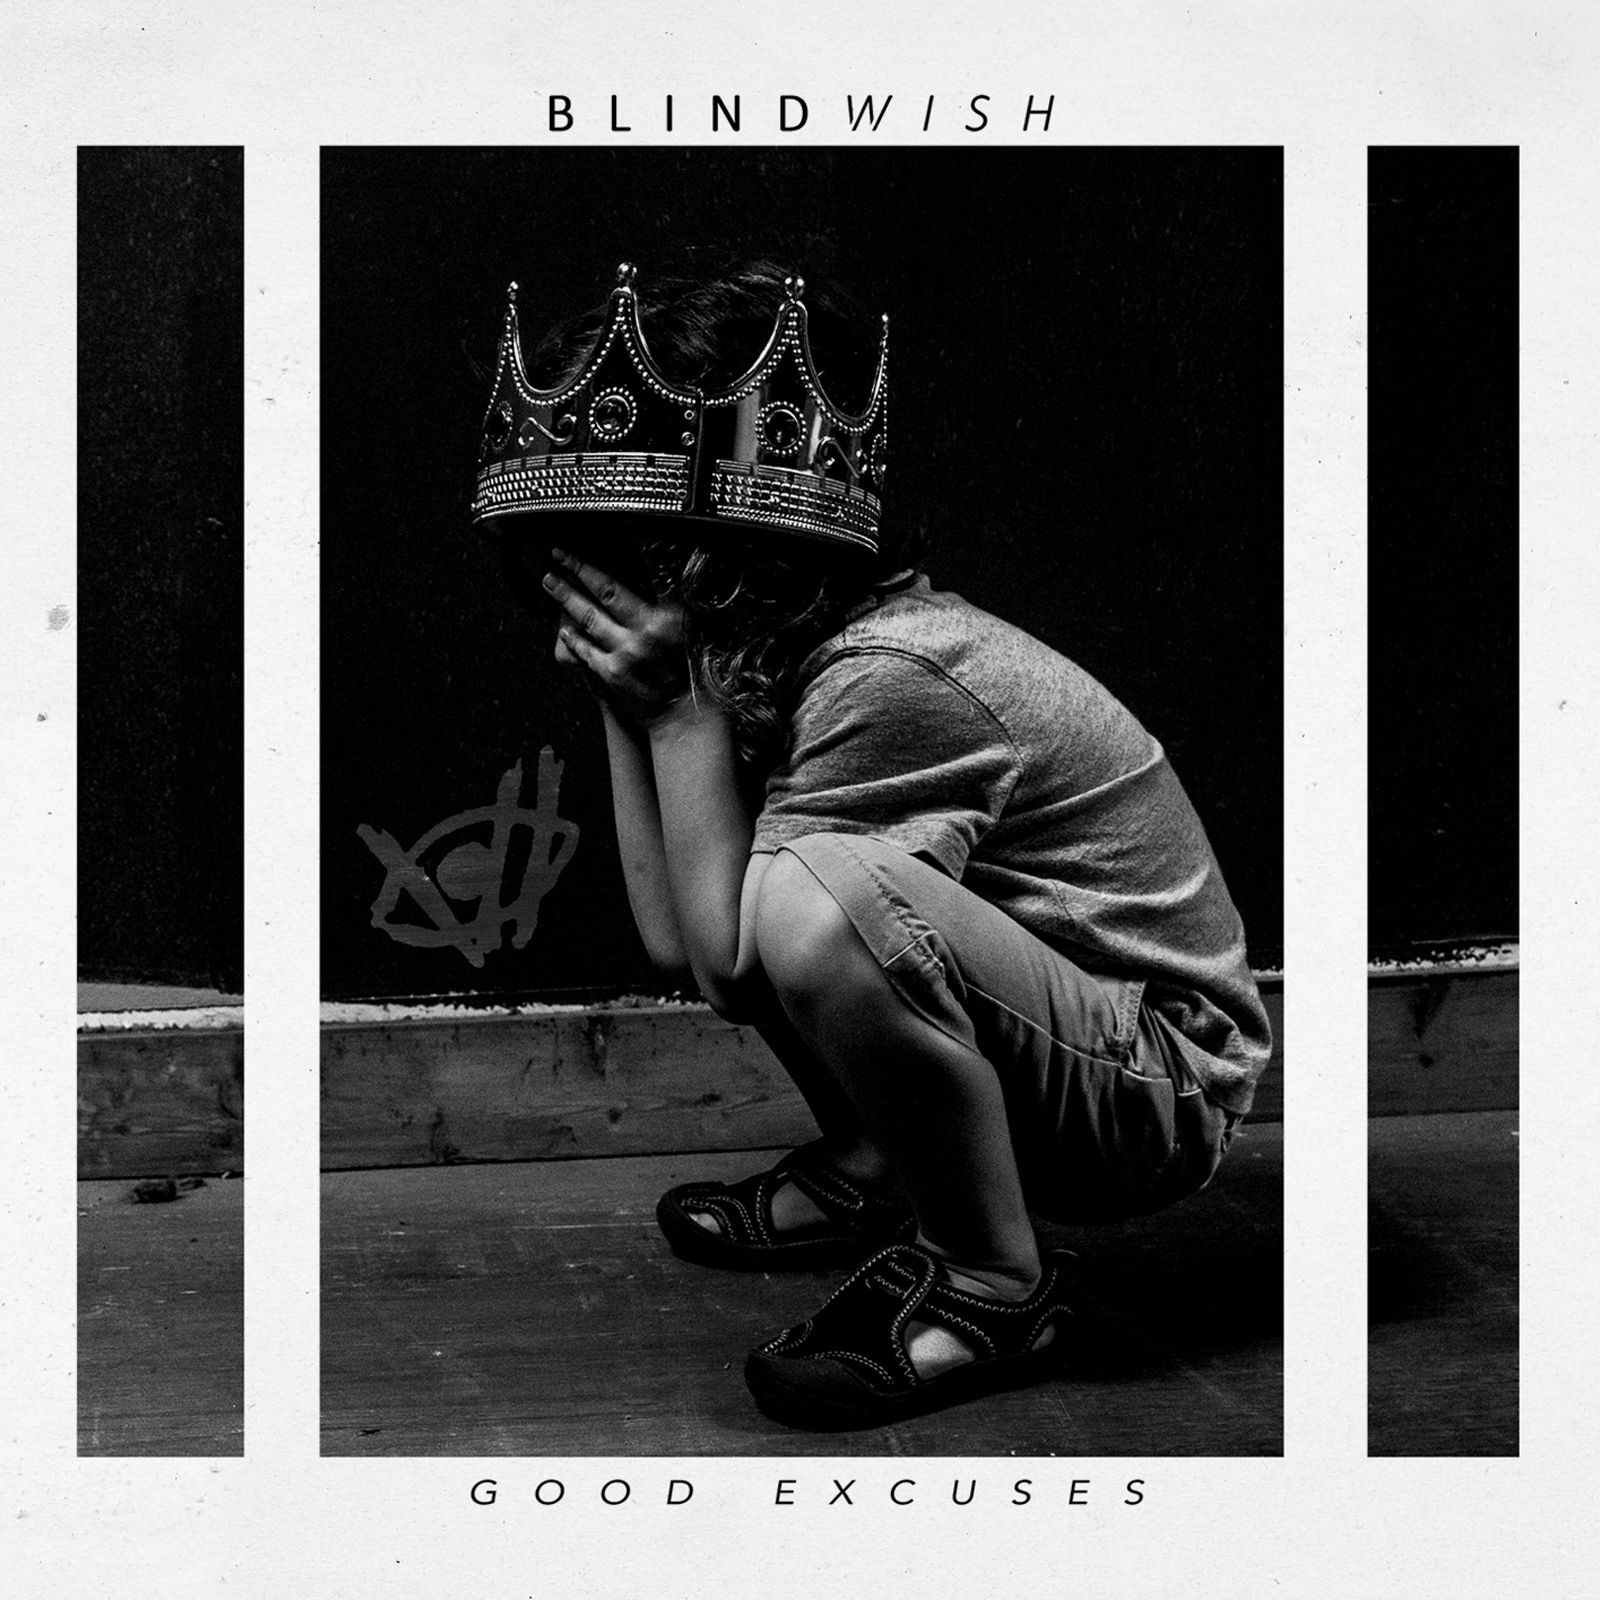 Blindwish - Good Excuses (2017)